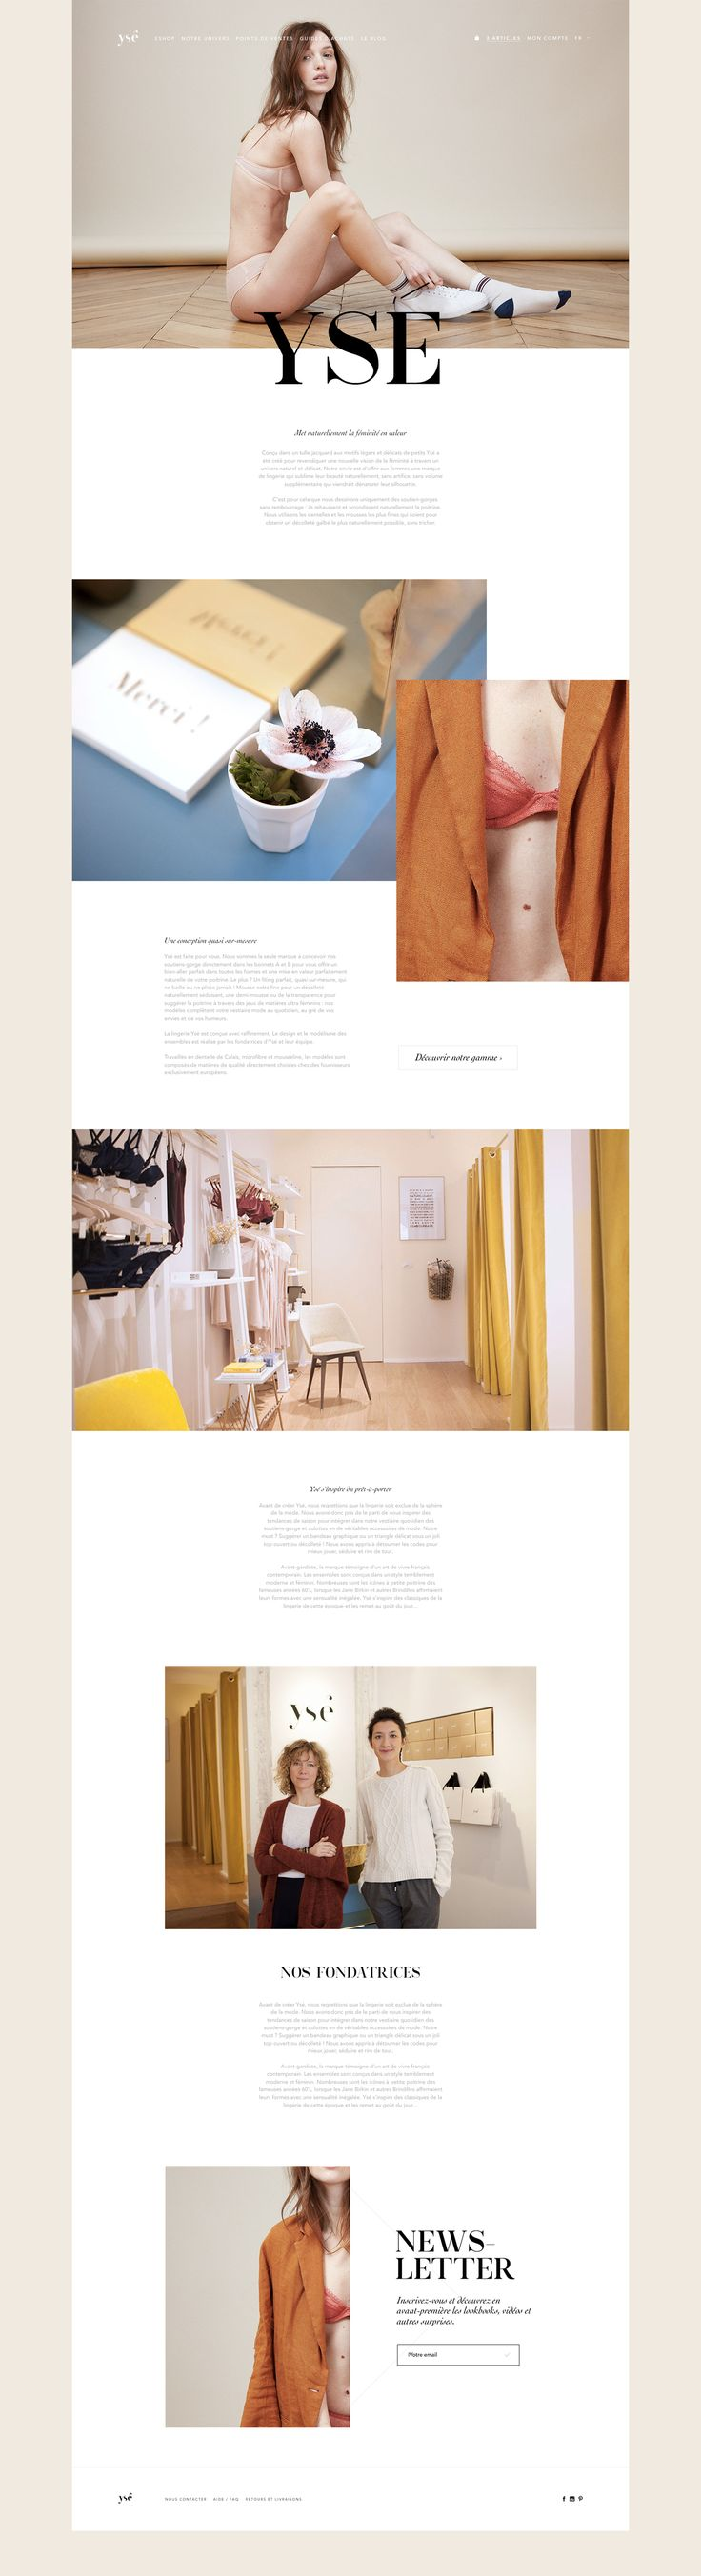 Ysé - Website on Behance